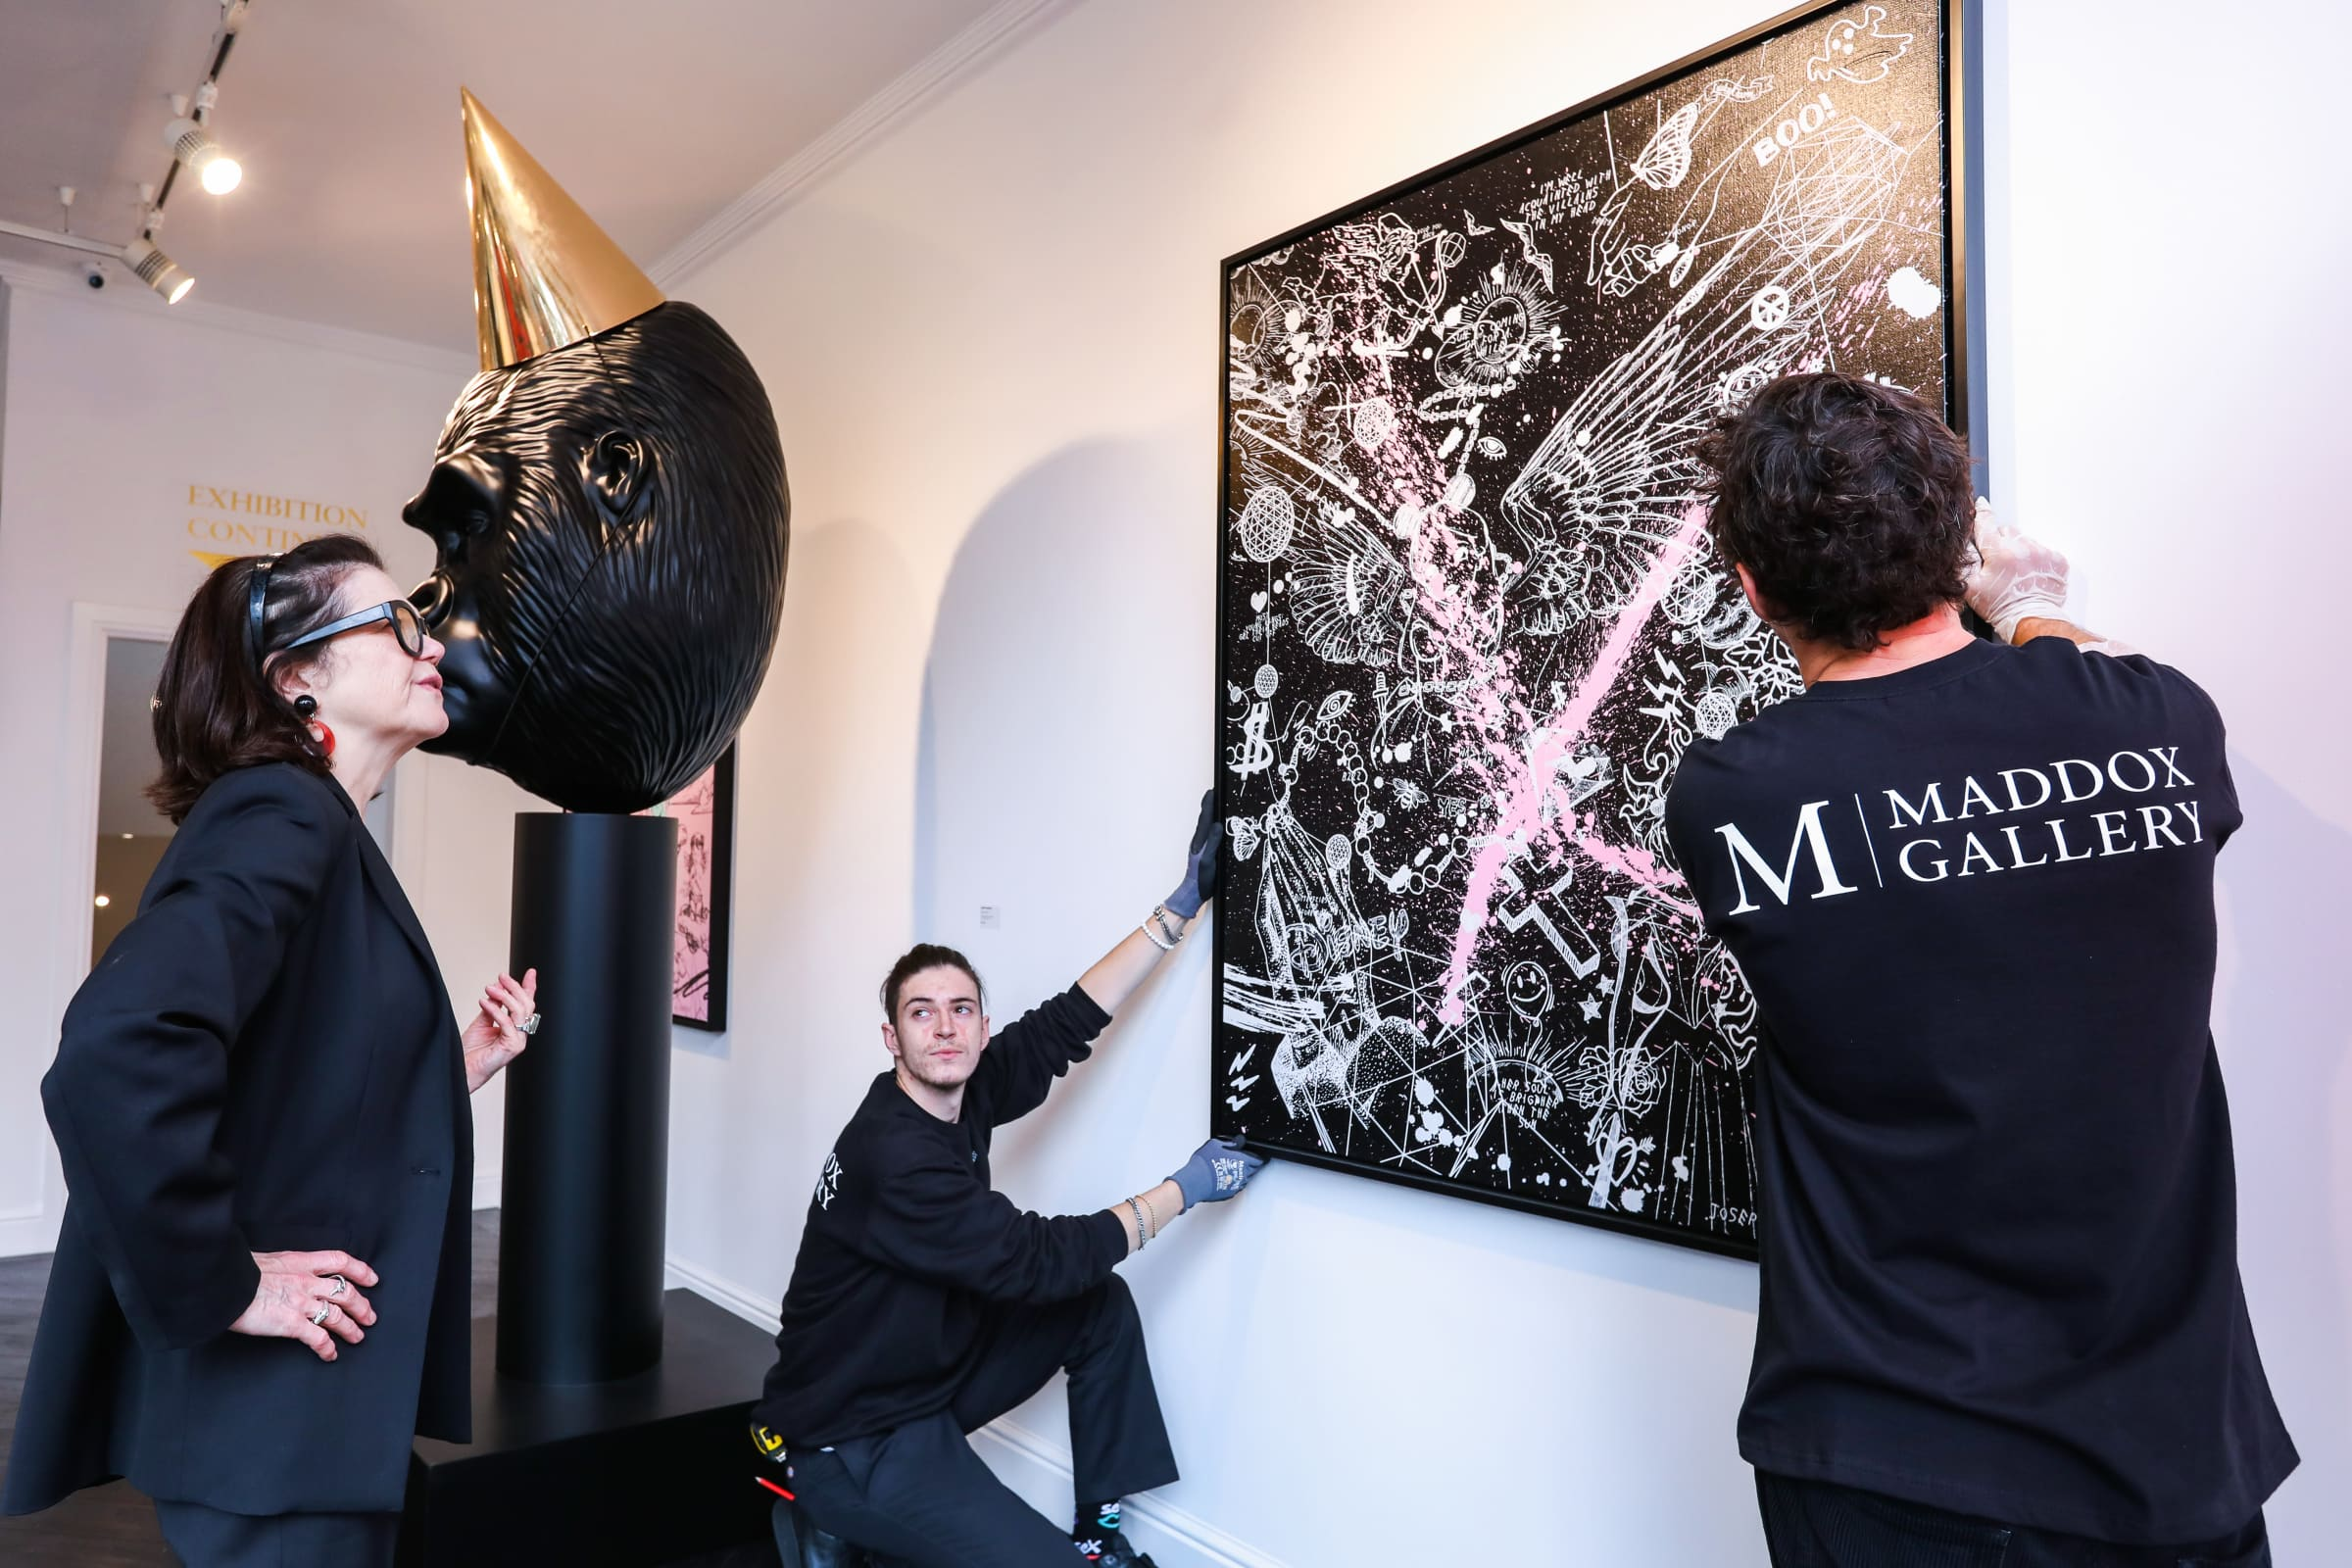 The Questions You Should Be Asking a Gallerist, How to receive the expert guidance you need to make the right...